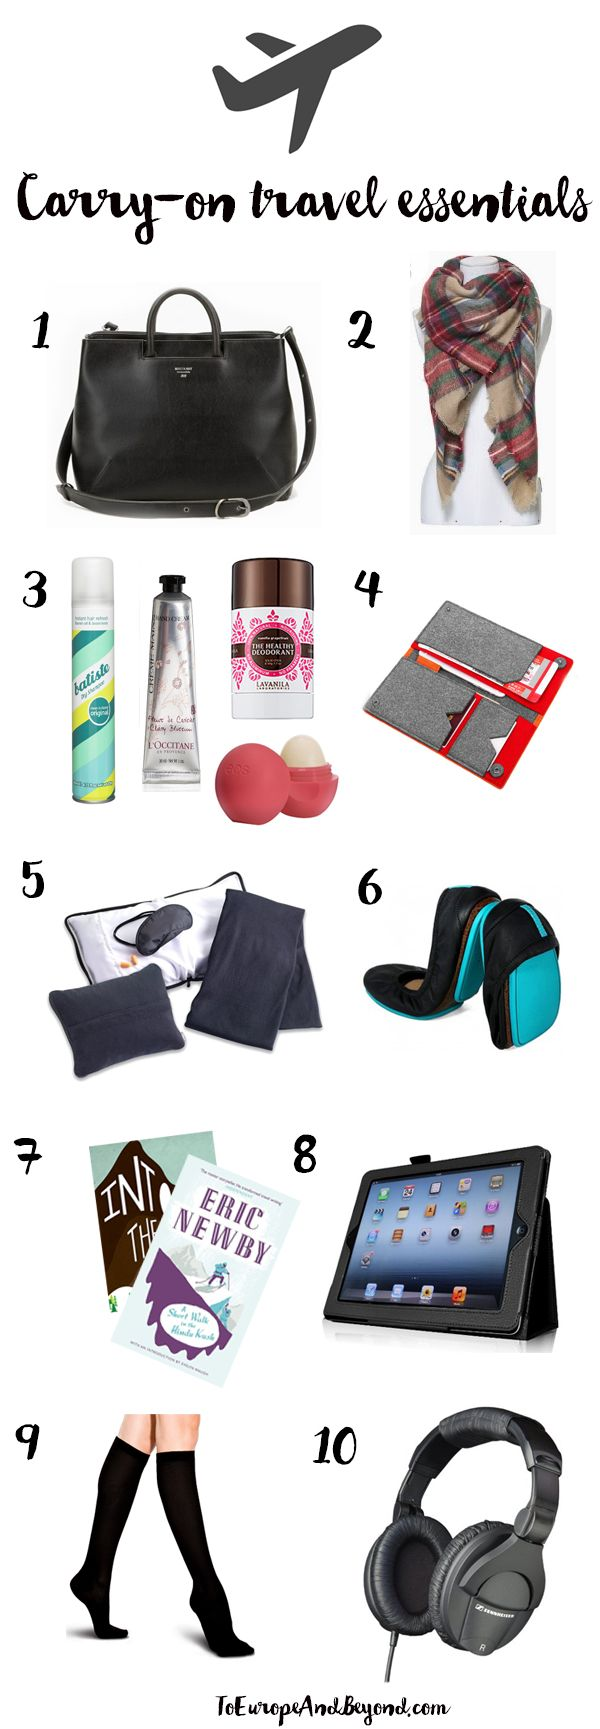 The ten items you should plan for in your carry-on packing, or, in other words, how to #travel lightly, stylishly and efficiently. http://toeuropeandbeyond.com/carry-on-packing-essentials/